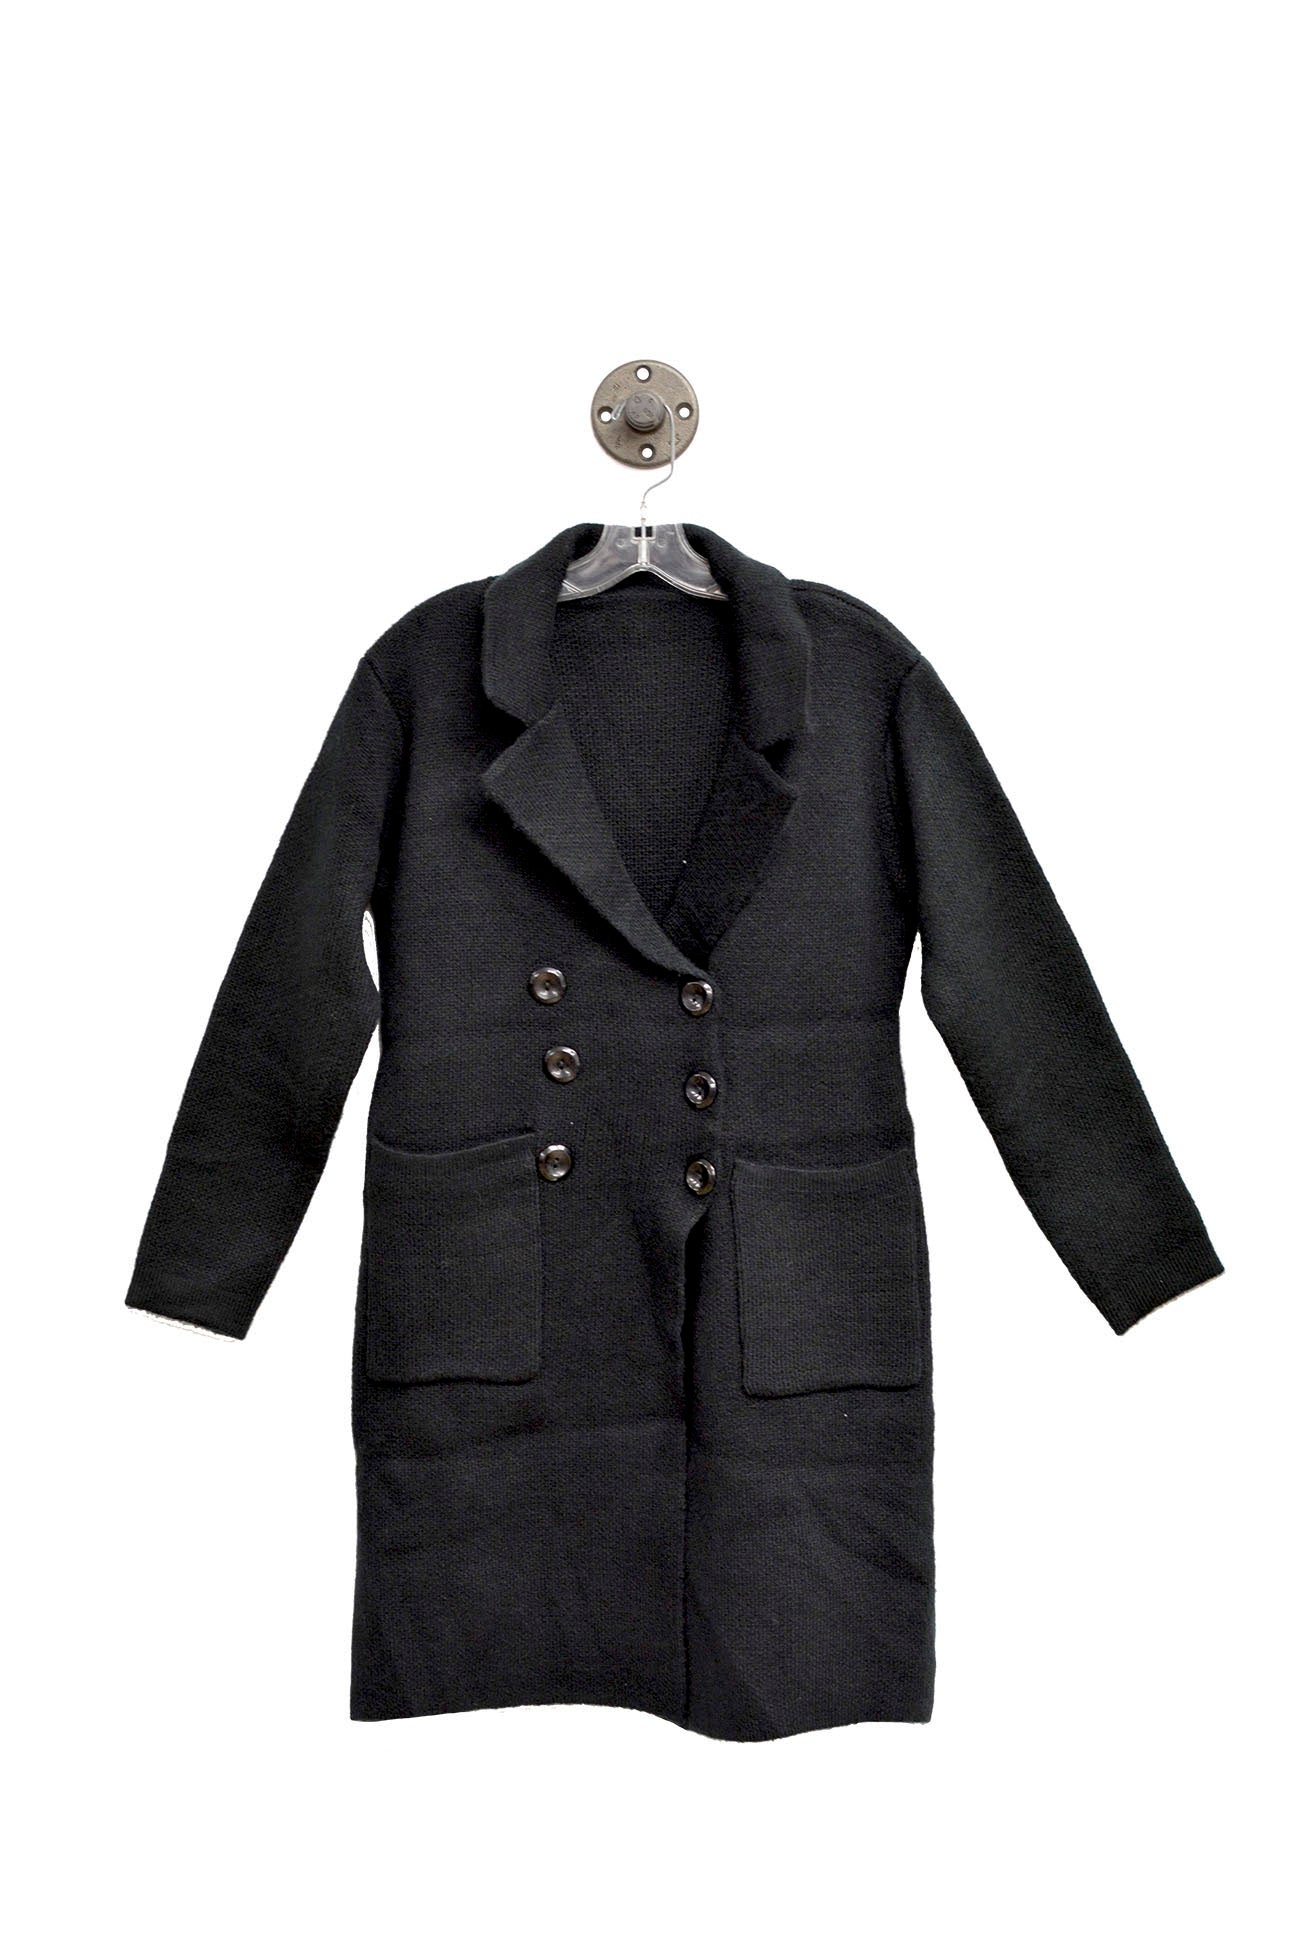 Long Black Trench Coat with Front Pockets and Brown Buttons